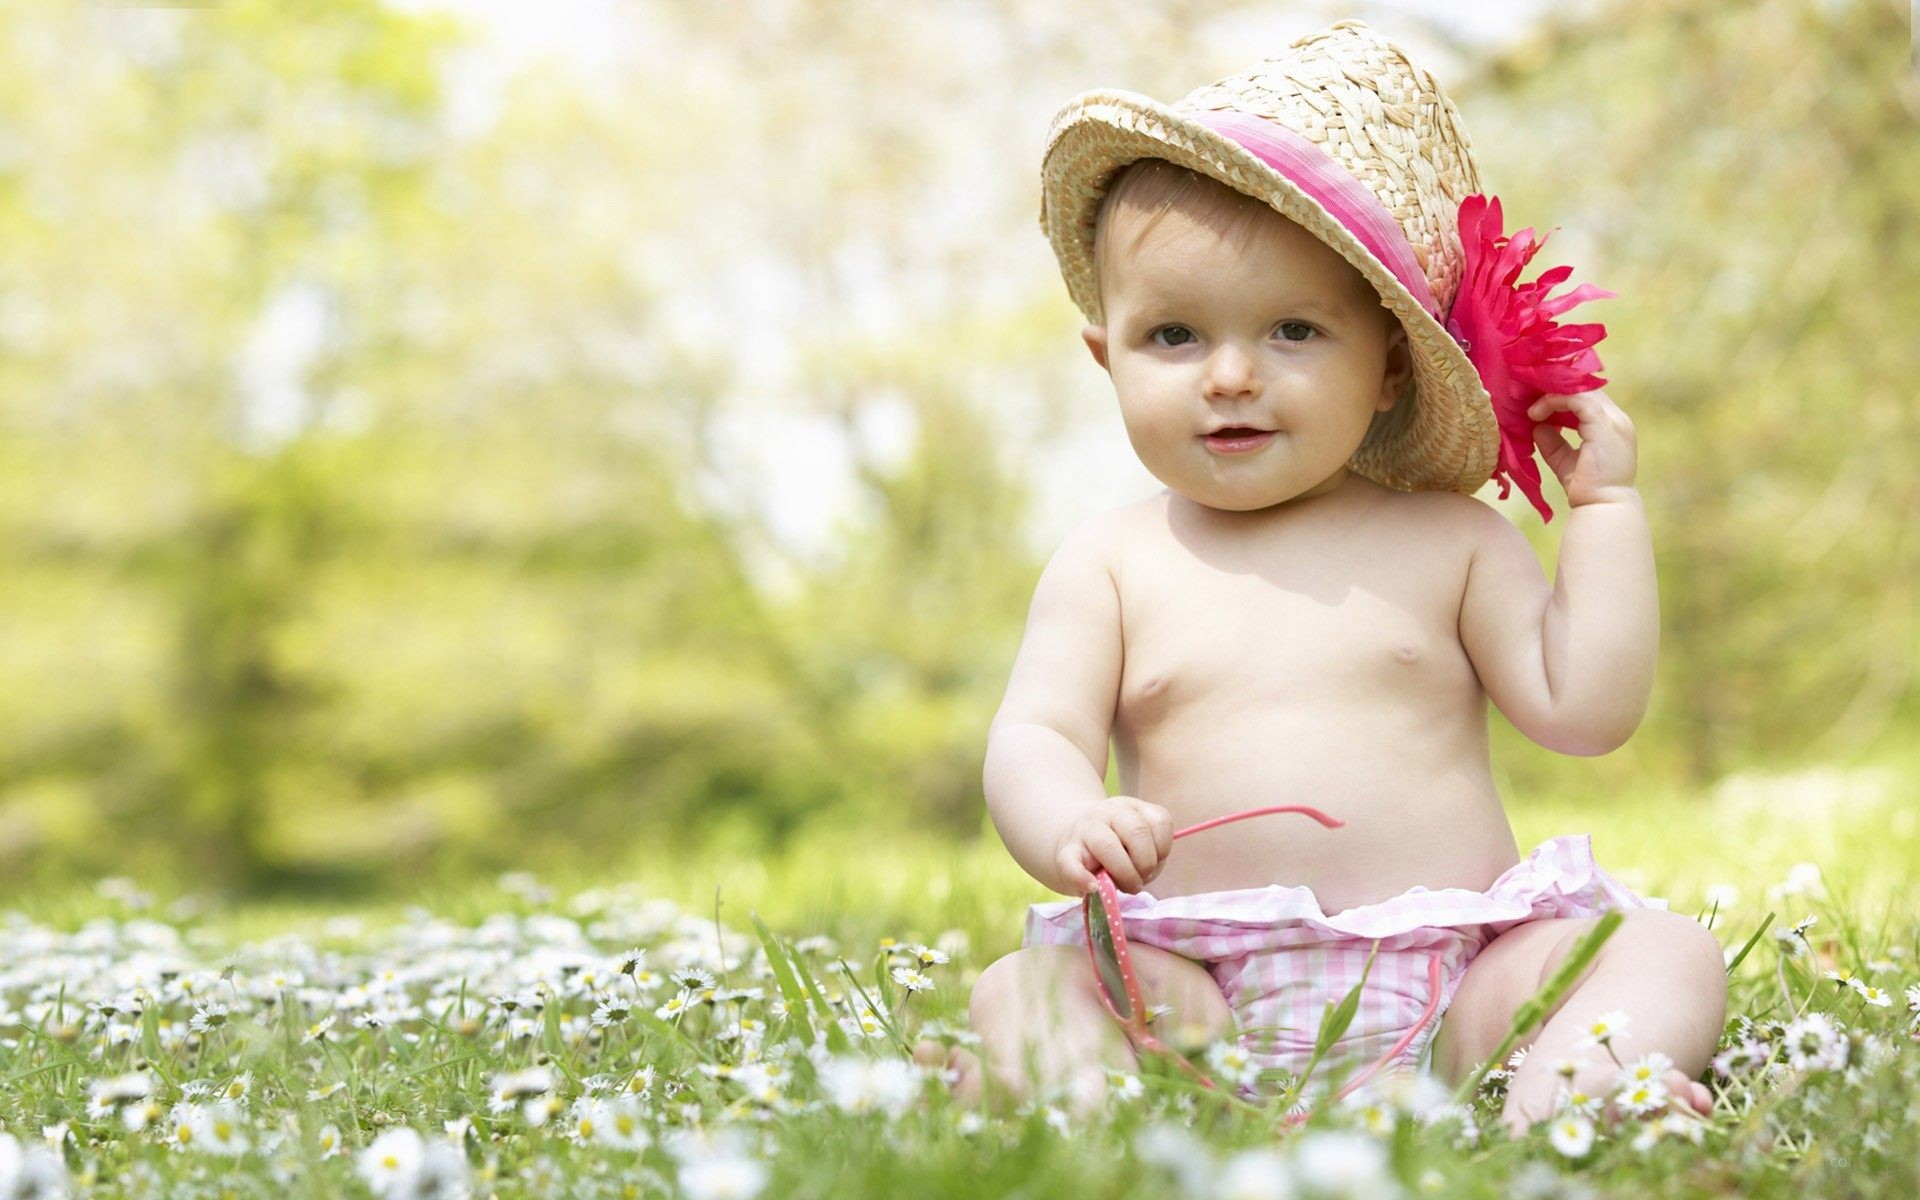 Nature wallpapers cute babies wallpapers 62 pictures wallpaper cute girl babies wallpapers free download 1920x1200 56 download cute baby girl plant wallpapers altavistaventures Images